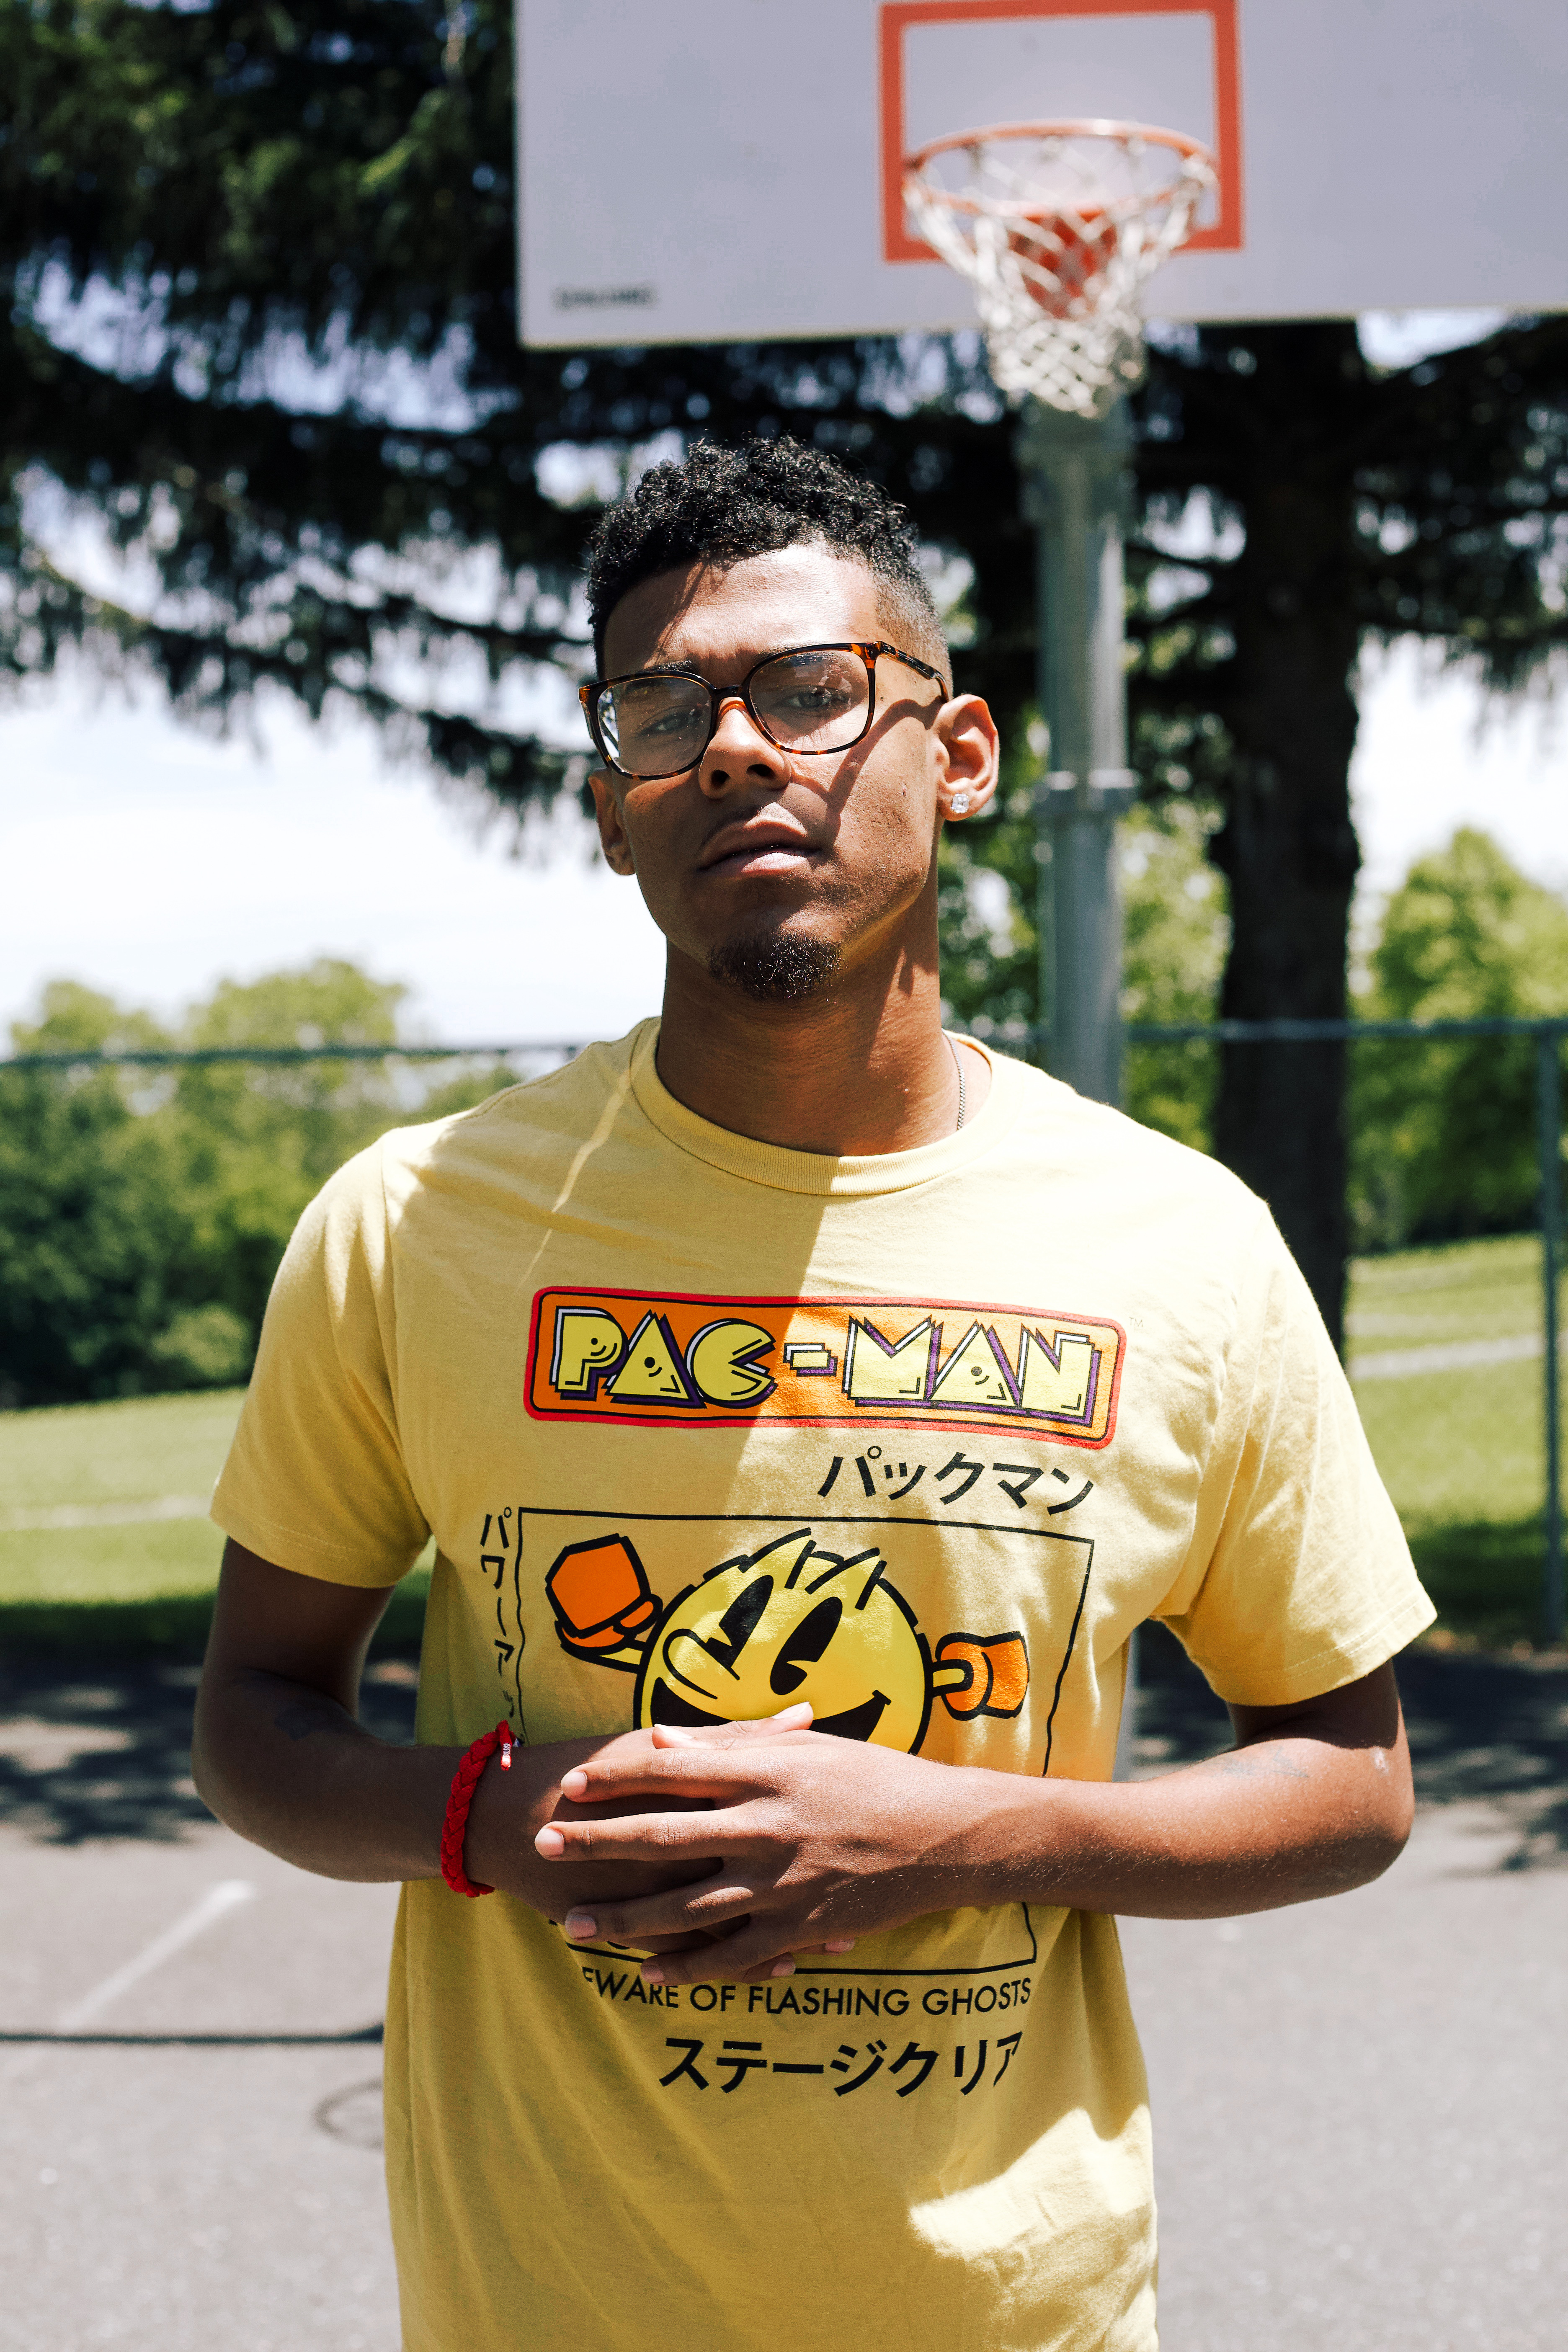 Photo of Standing Man in Yellow Pac-man T-shirt Standing in Basketball Court